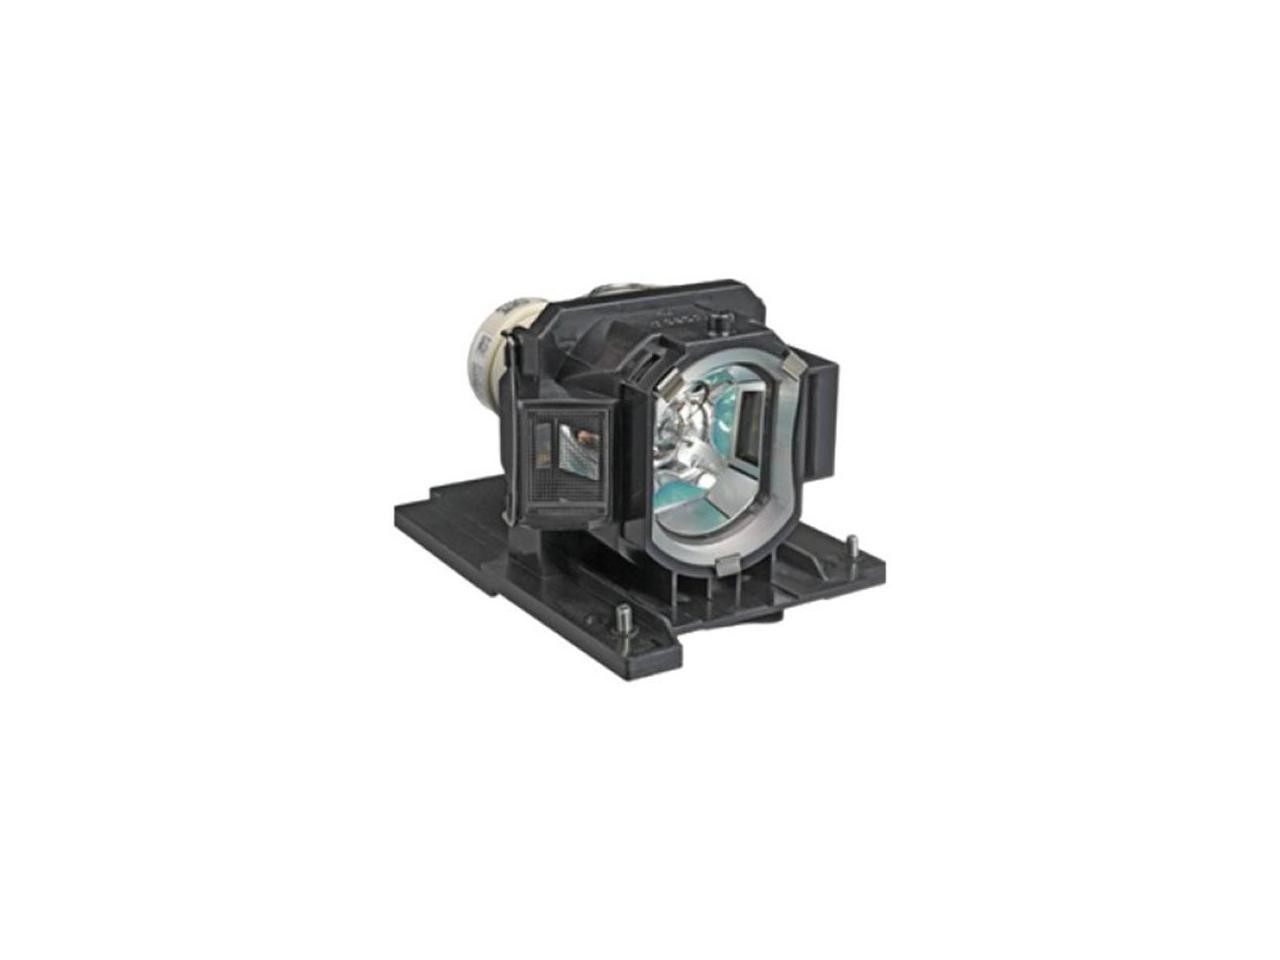 Total Micro 280W Projector Lamp For UF70 UF70w 1020991-TM